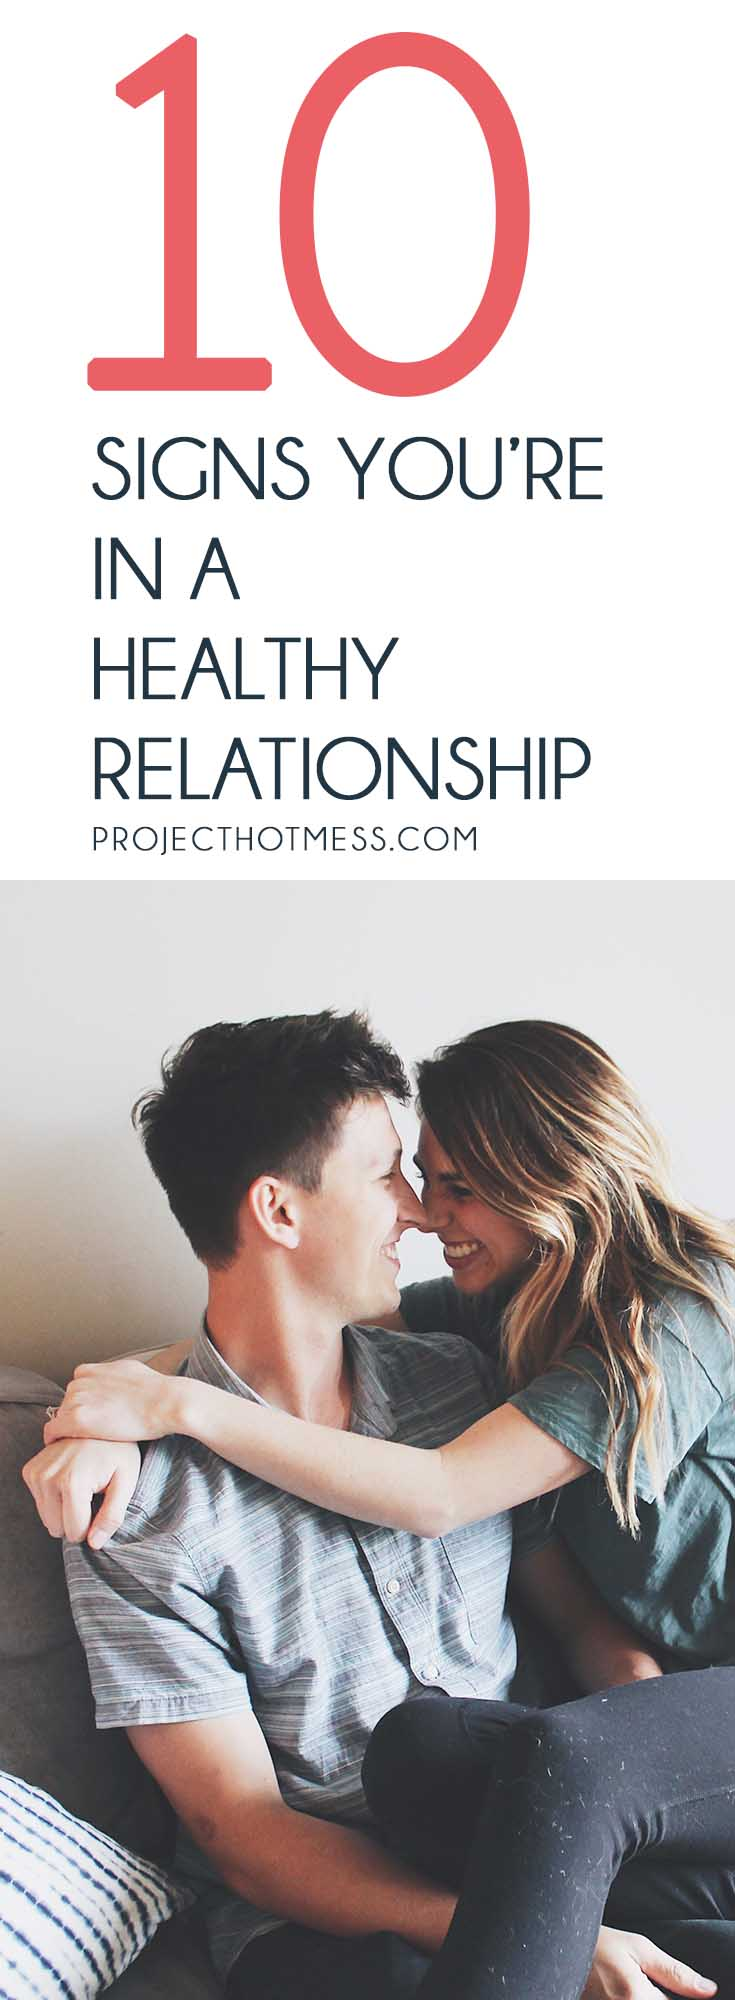 Relationships are hard work, and for some of us we can get stuck in a toxic relationship. But how do you know when you're in a healthy relationship instead? Here are some of the most obvious, but sometimes overlooked, signs that you're in a healthy relationship! Relationships   Relationship Goals   Happy Relationships   Marriage   Happy Marriage   Marriage Goals   Married Life  